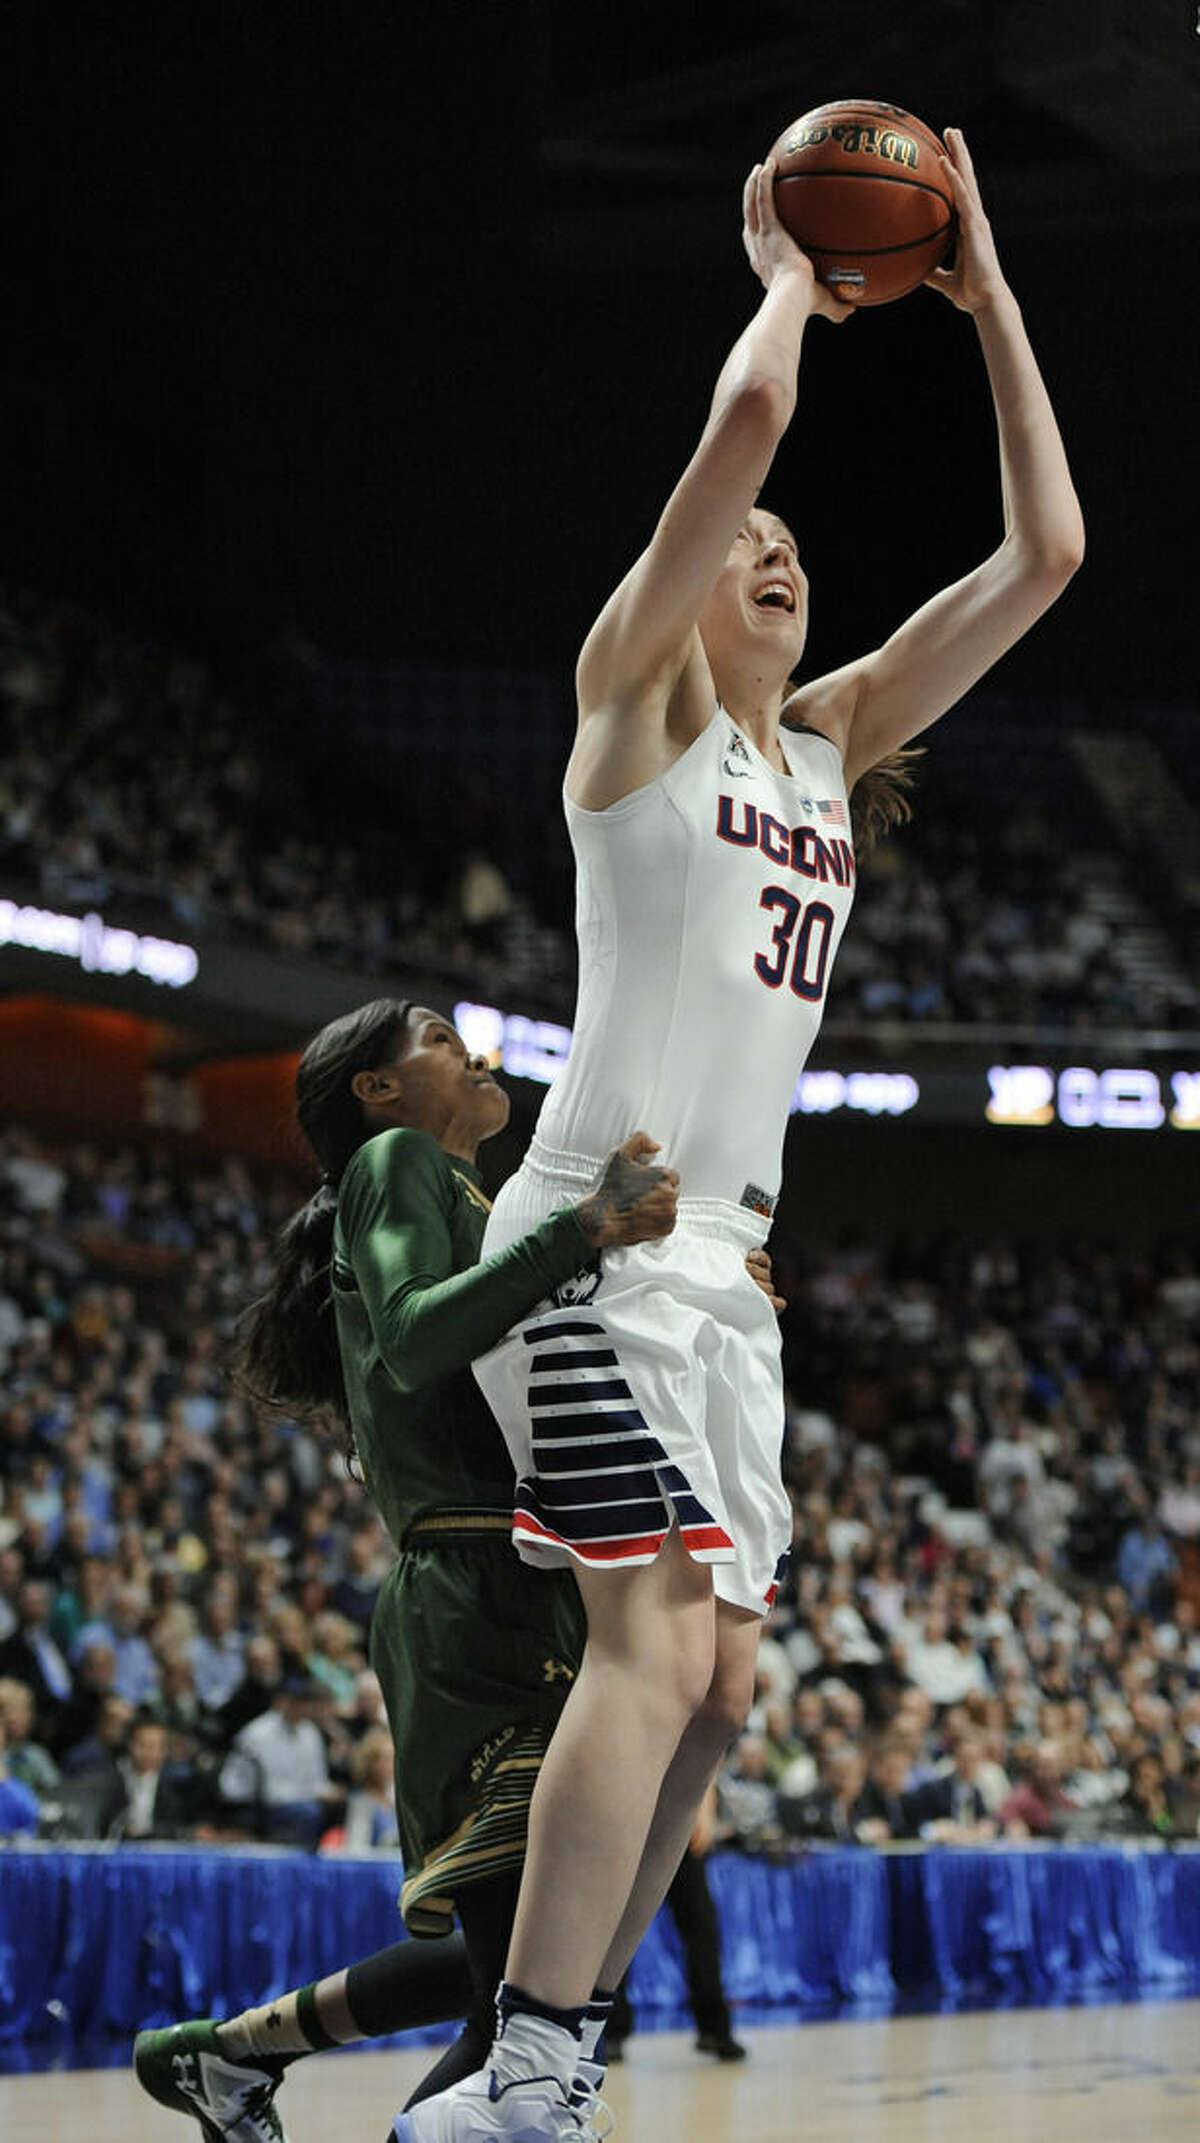 South Florida's Courtney Williams, back fouls Connecticut's Breanna Stewart during the first half of an NCAA college basketball game in the American Athletic Conference tournament finals at Mohegan Sun Arena, Monday, March 7, 2016, in Uncasville, Conn. (AP Photo/Jessica Hill)